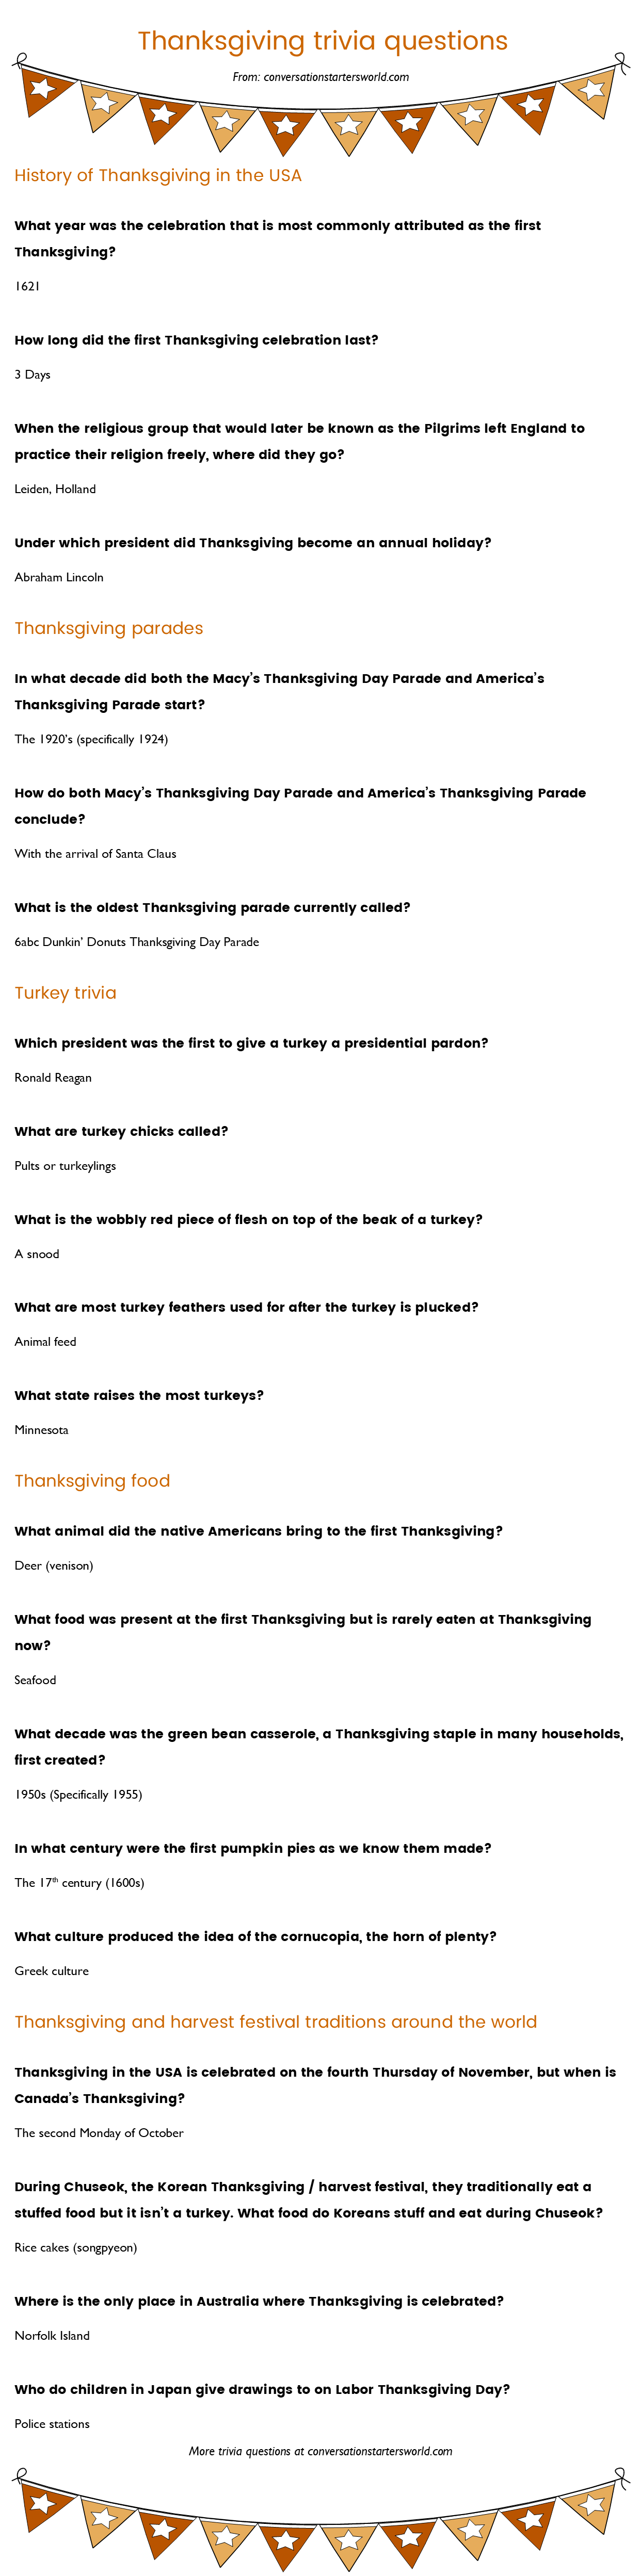 photo regarding Printable Trivia Questions for Middle School Students known as 21 Thanksgiving trivia issues maximum us residents dont recognize the